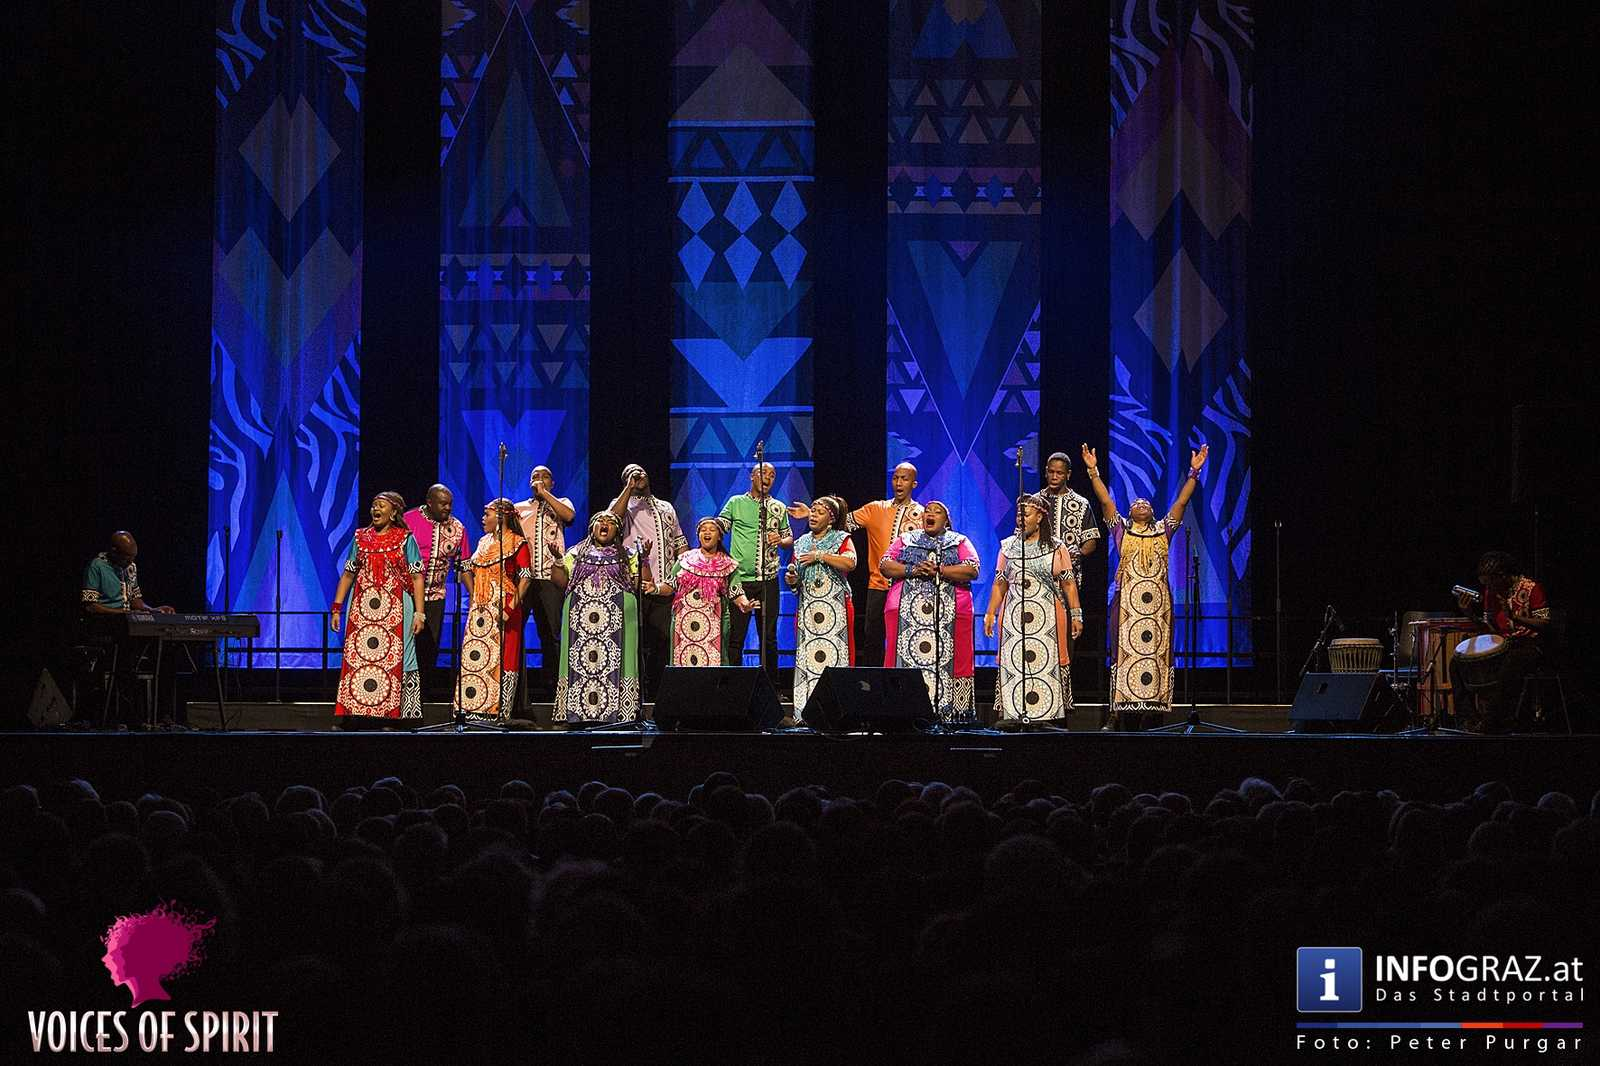 soweto gospel choir internationales chorfestival statdthalle graz voices of spirit eroeffnung festivals 2016 138